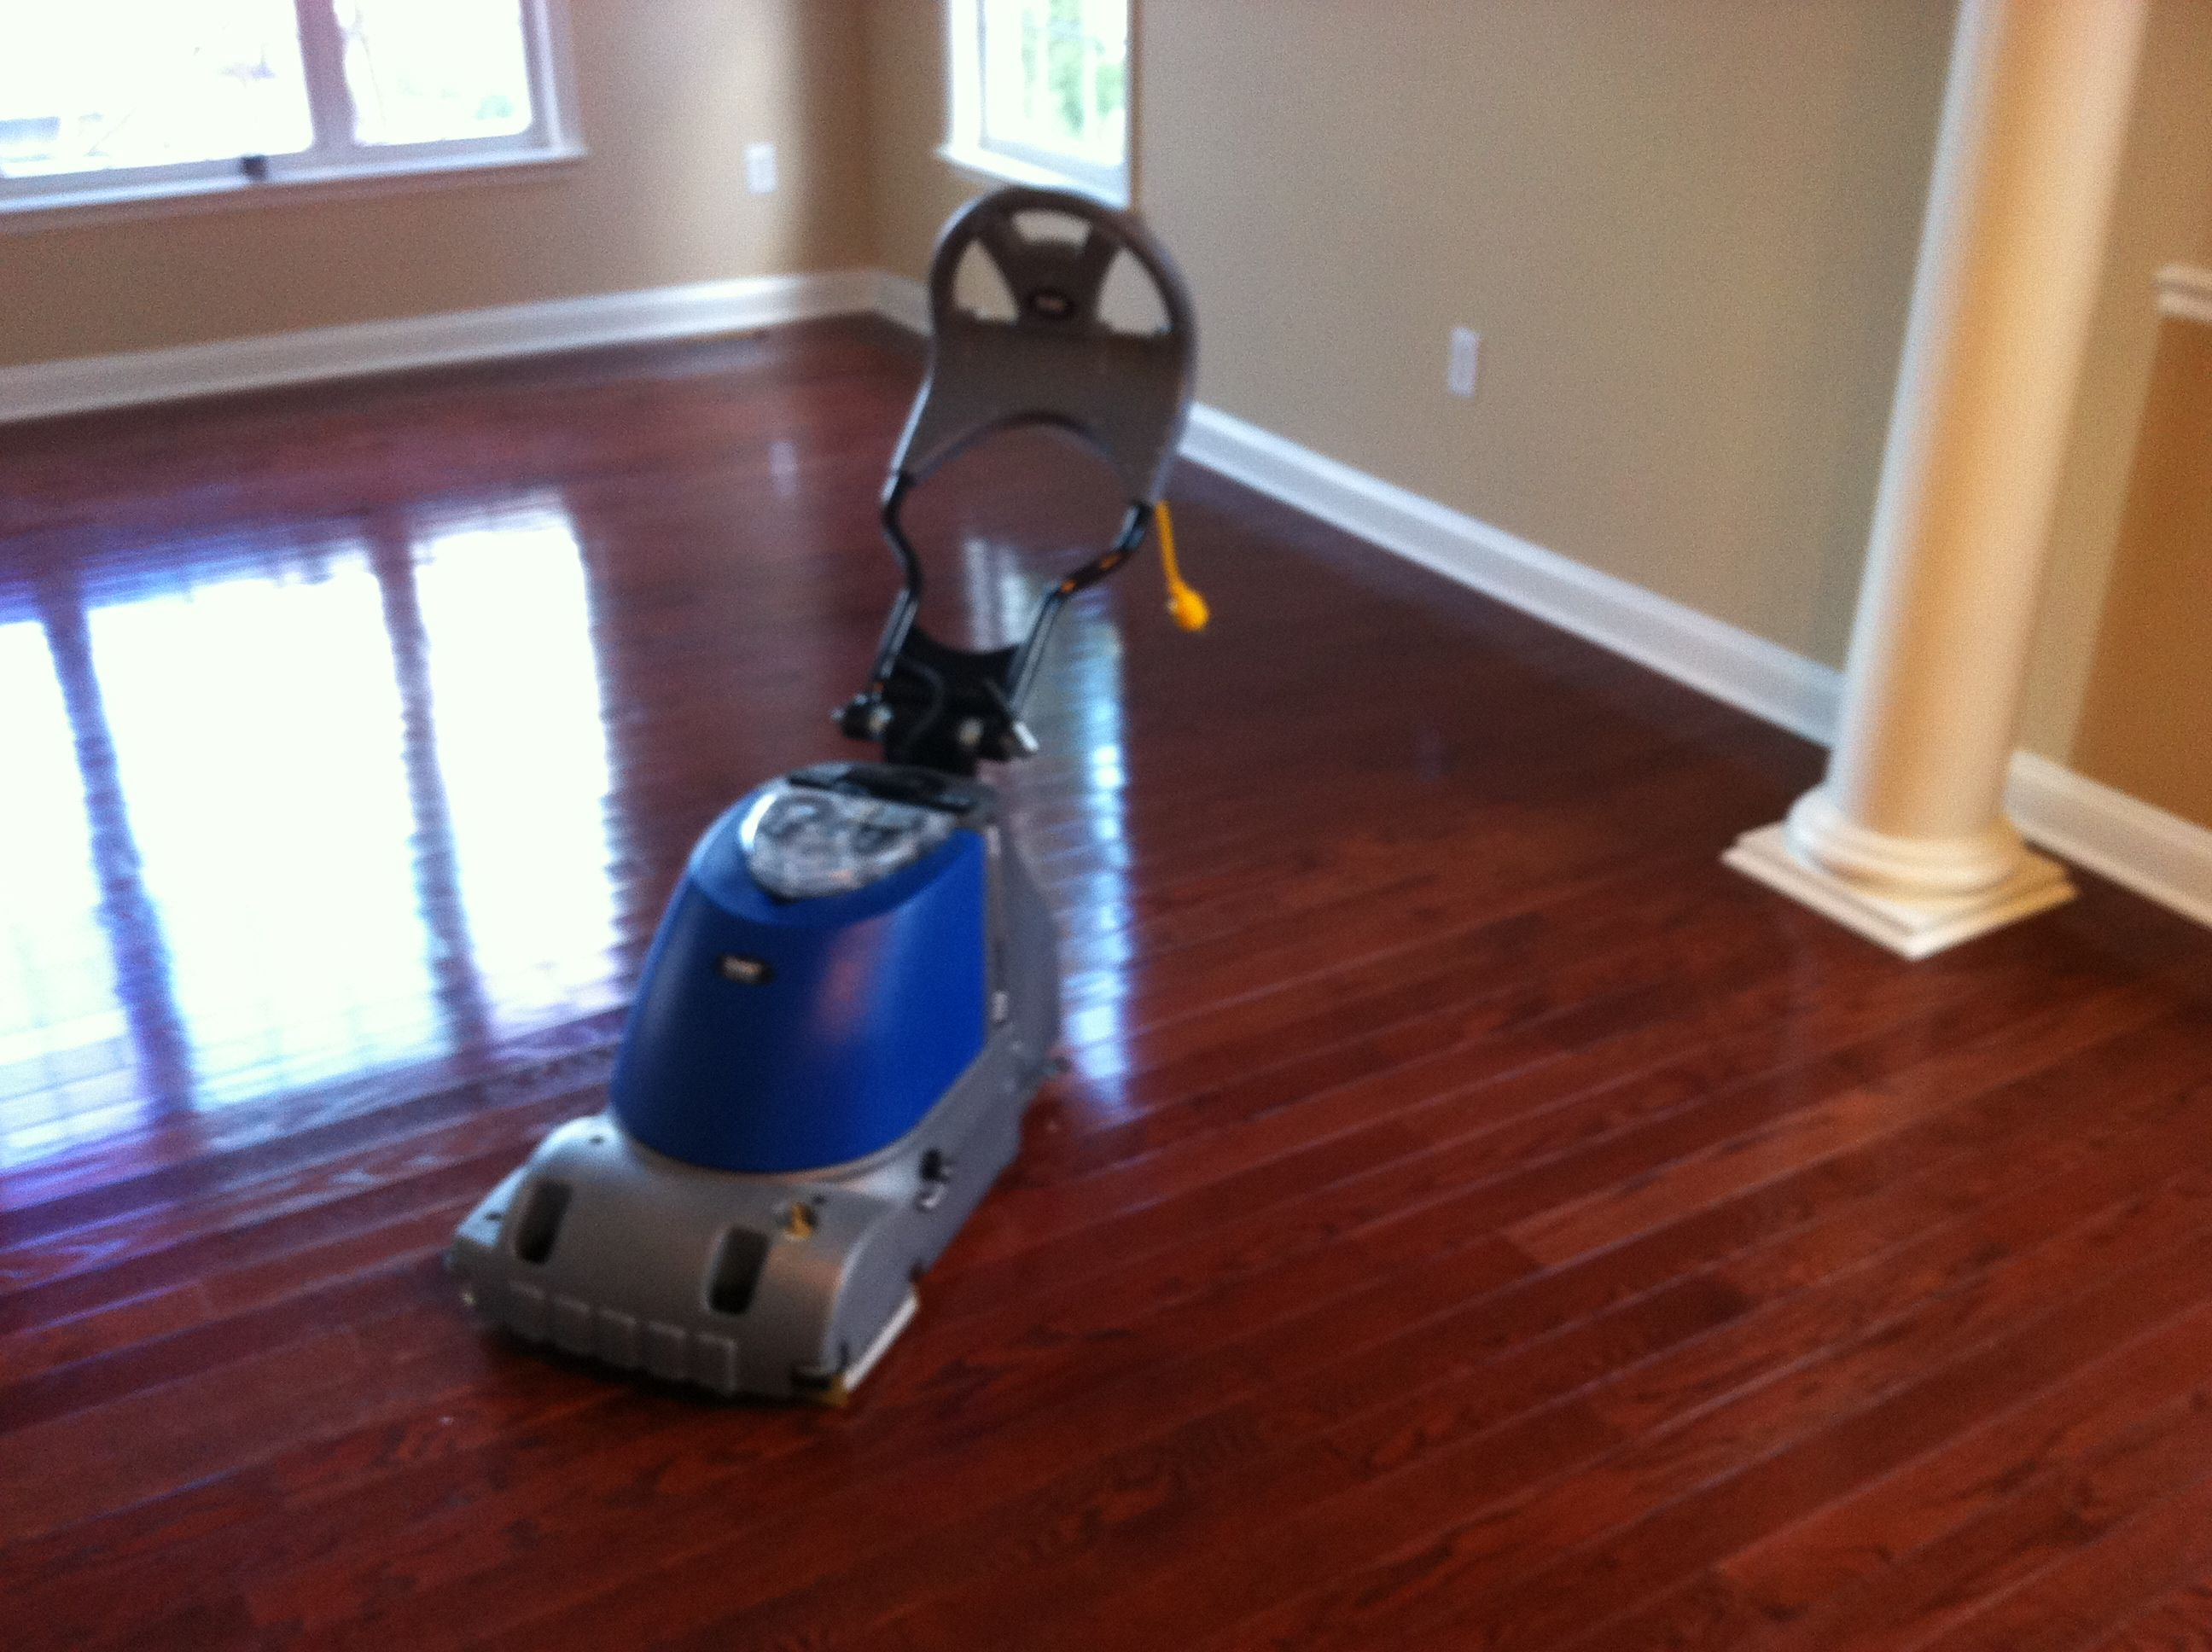 Superior What Is The Best Thing To Clean Hardwood Floors Part - 4: Painting Of Letu0027s Choose The Best Thing To Clean Hardwood Floor With Great  Result Without Regret